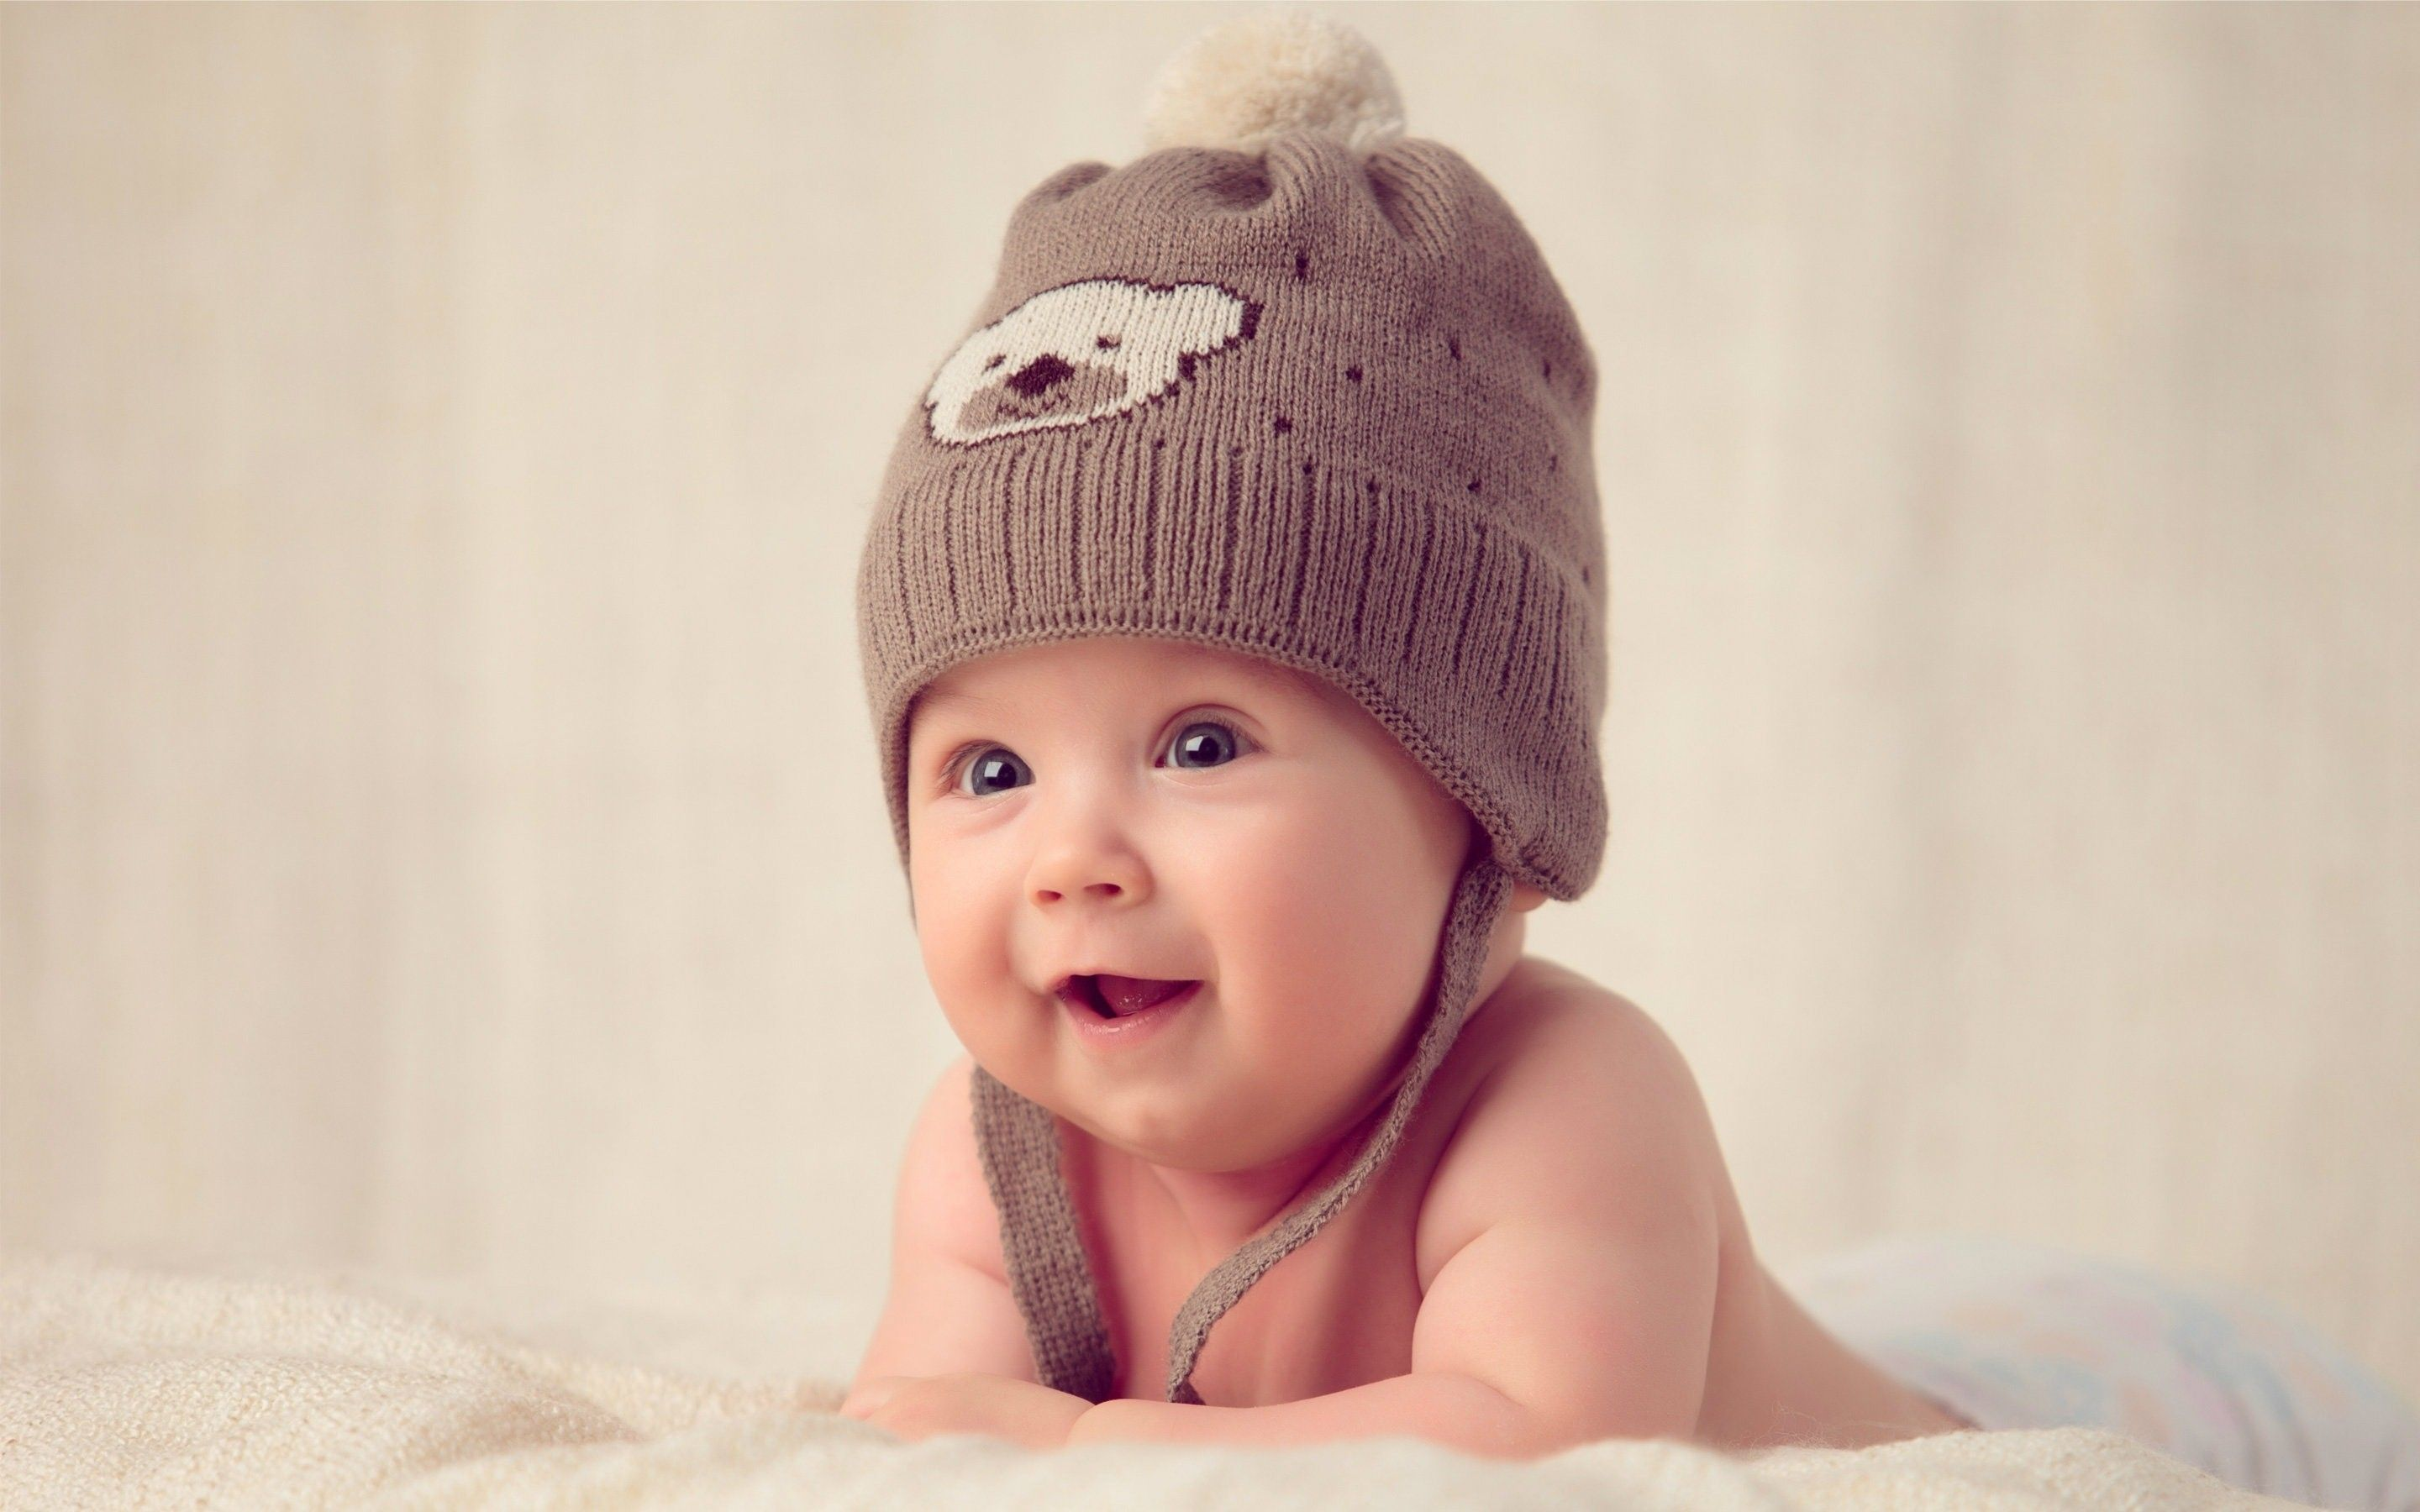 Cute Baby Girl Images For Dp Cute Baby Girl Photos Cute Baby Pictures Cute Baby Wallpaper